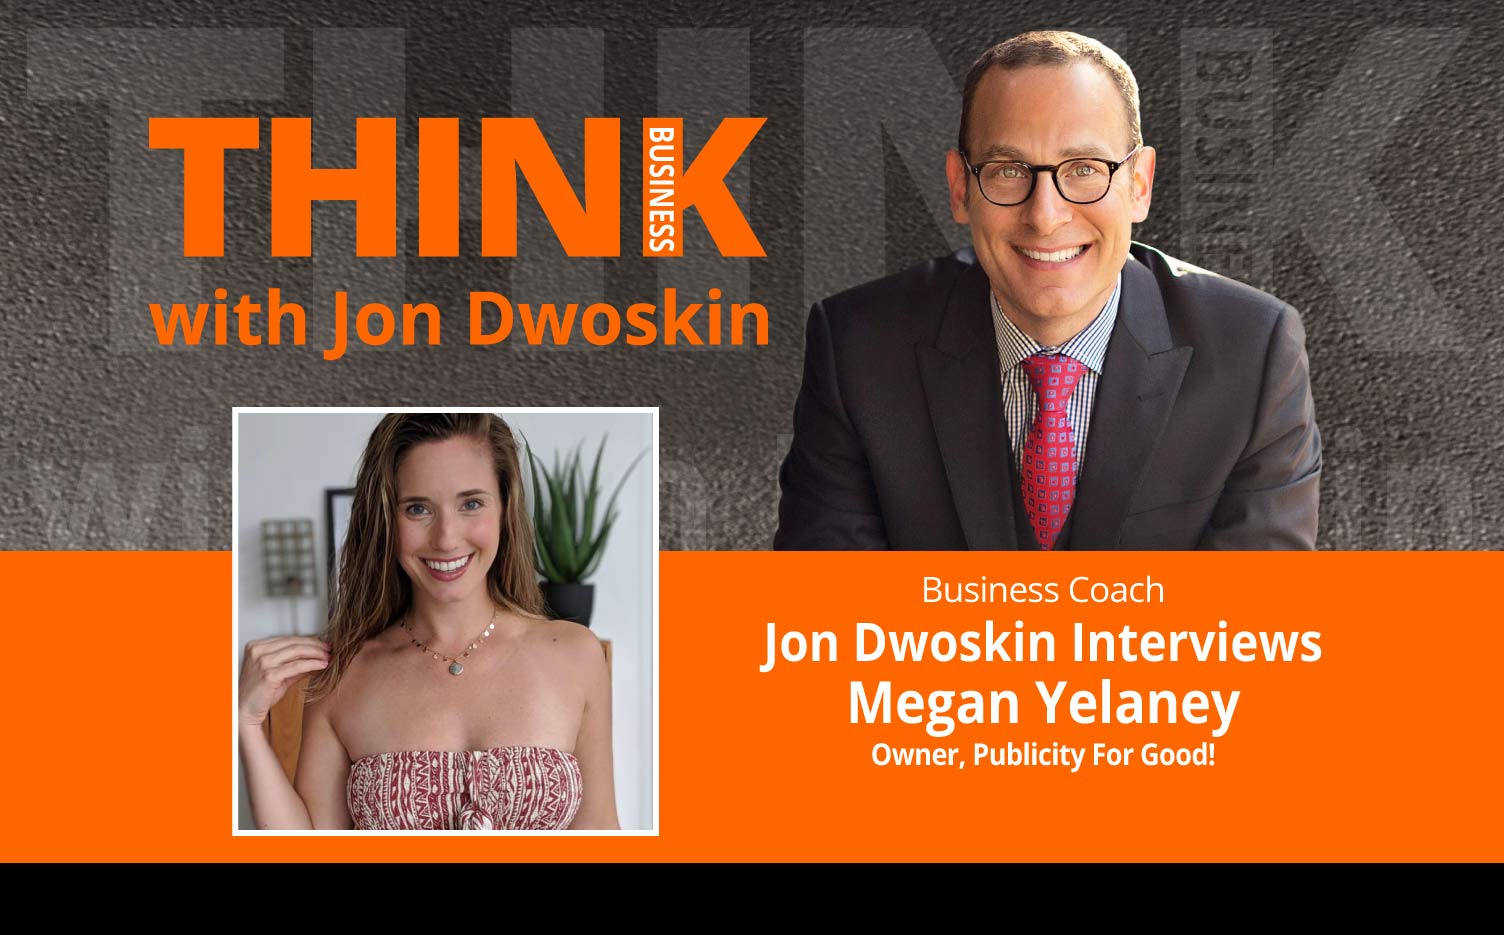 THINK Business Podcast: Jon Dwoskin Interviews Megan Yelaney, Owner, Publicity For Good!